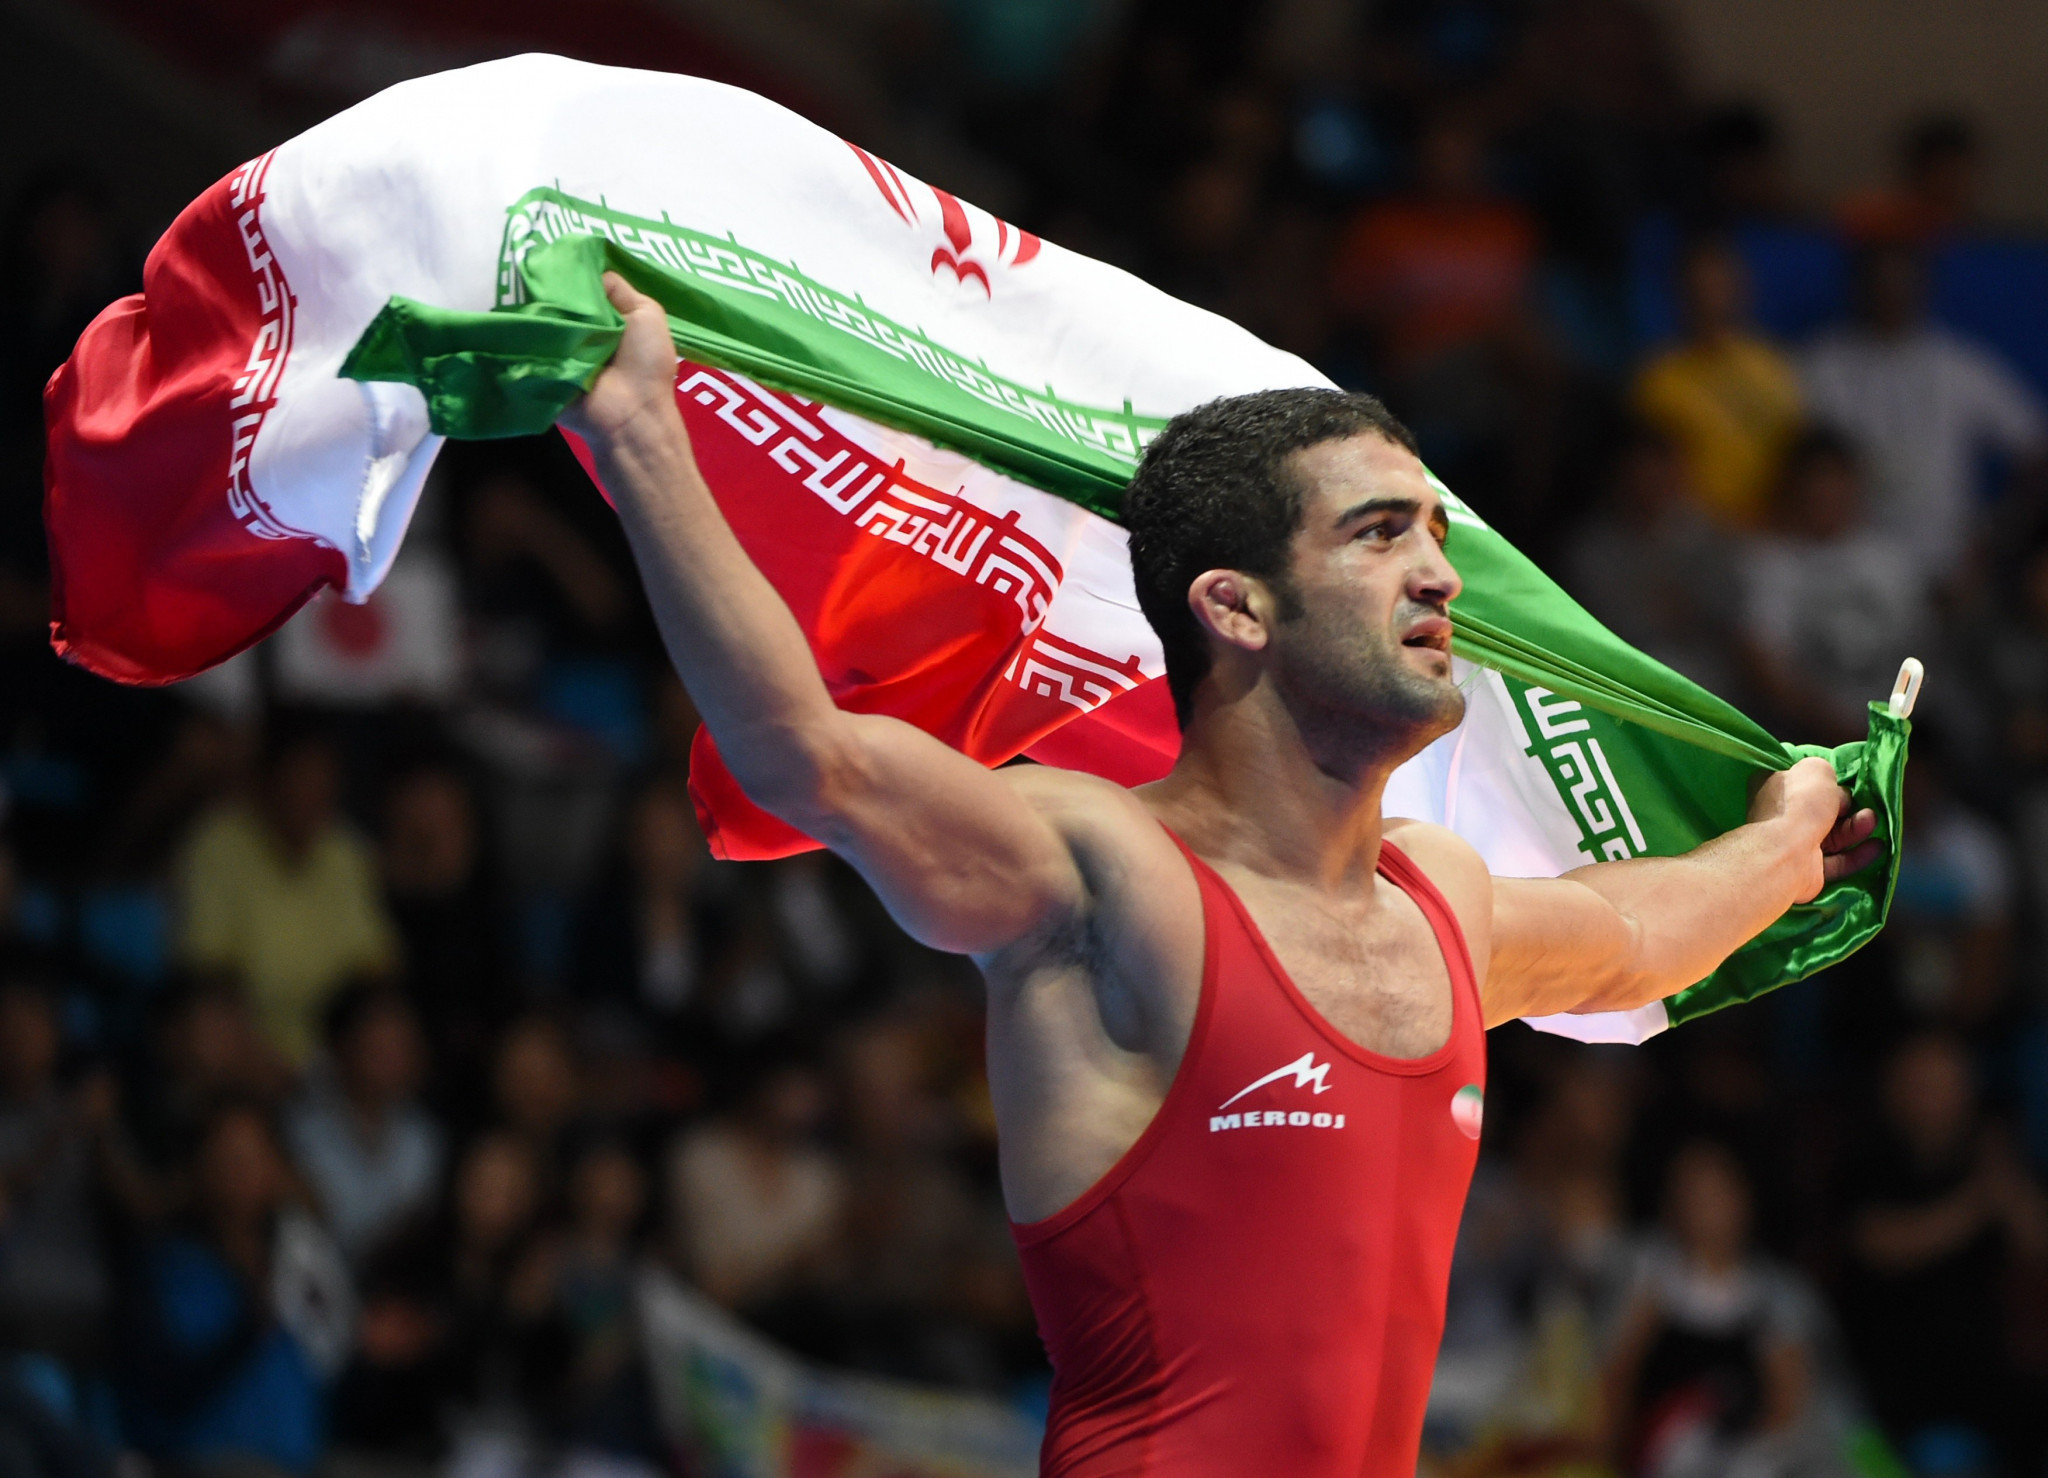 Asian Games champion Esmaeilpour to make wrestling comeback